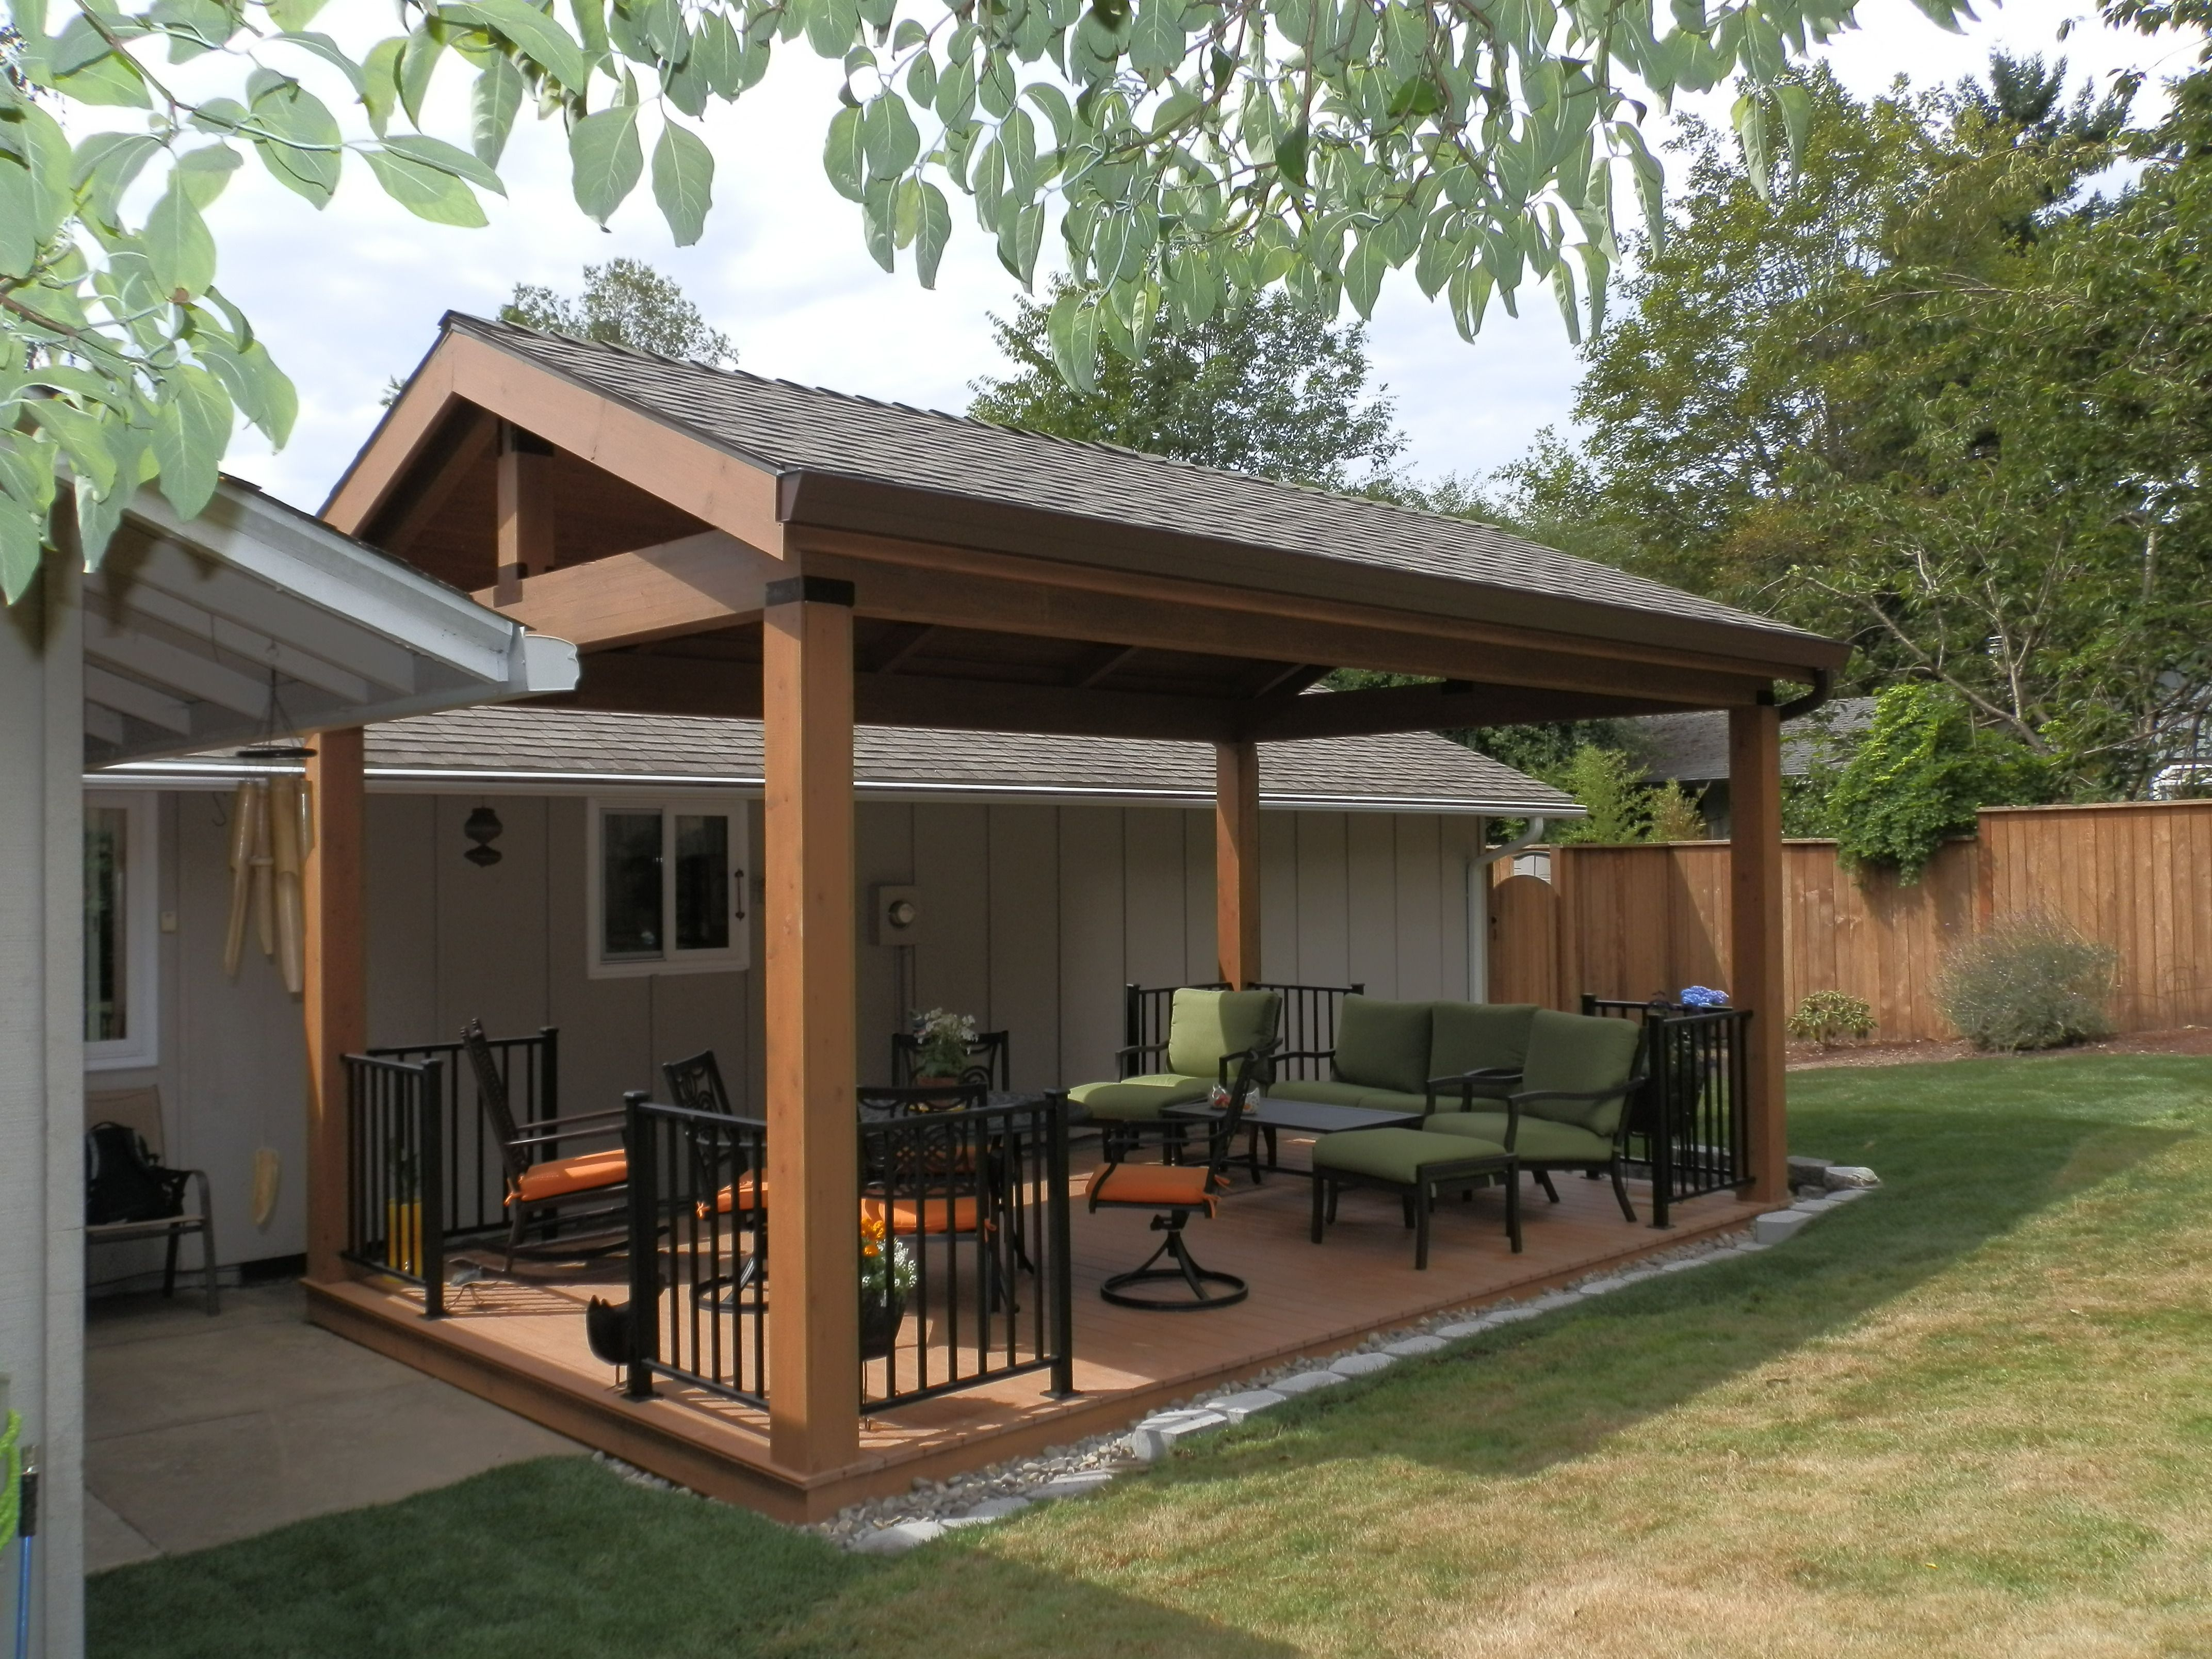 Outdoor Covered Deck | Remodeling contractors, Portland ... on Backyard Renovation Companies id=92967